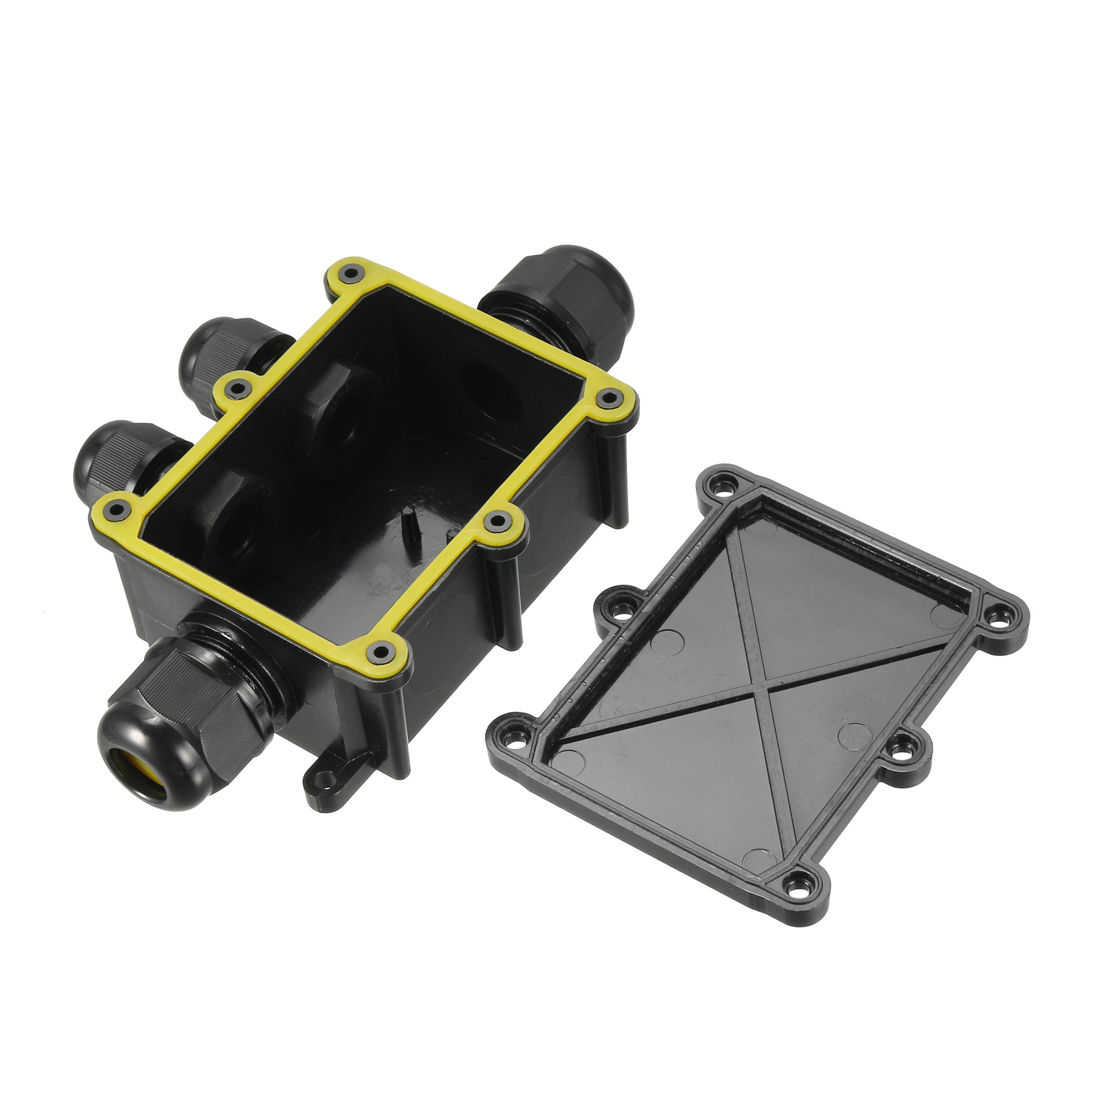 Waterproof IP68 Outdoor PC Electrical PG9 Cable Gland Electrical Junction Box